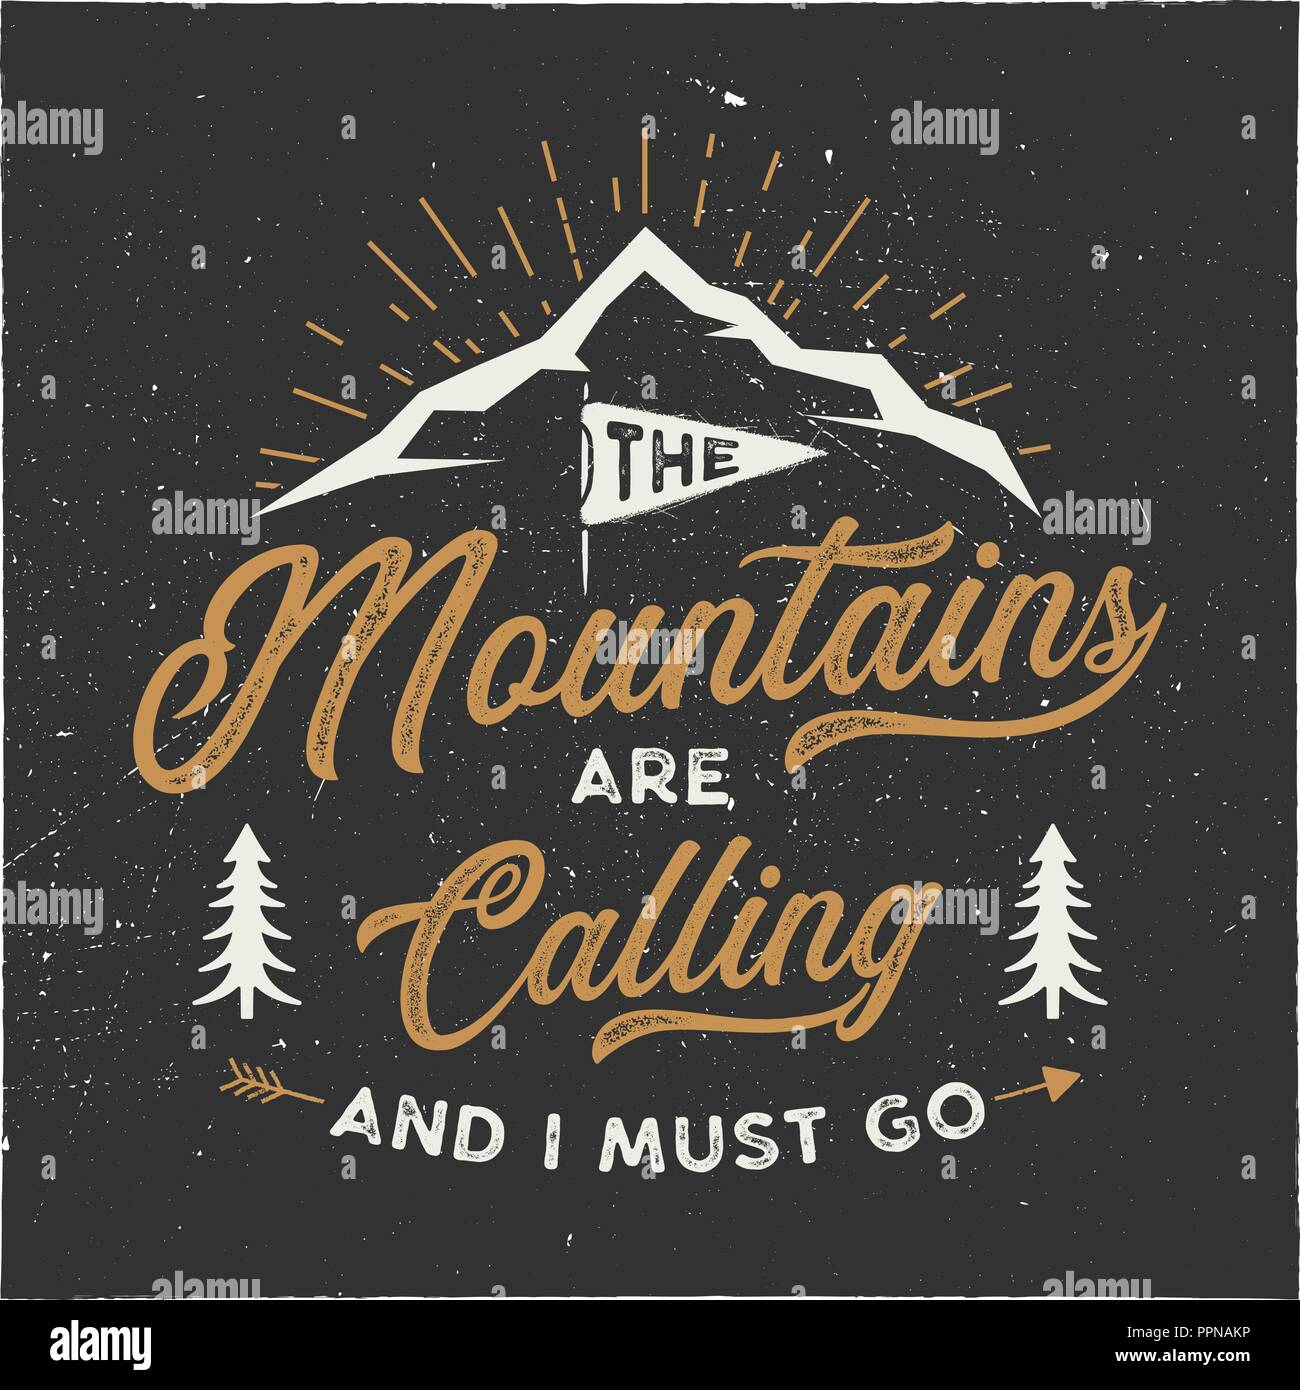 The mountains are calling and i must go T-Shirt design. Adventure wall art, poster. Camping emblem in textured style. Typography hipster tee. Stock vector illustration isolated on dark background Stock Vector